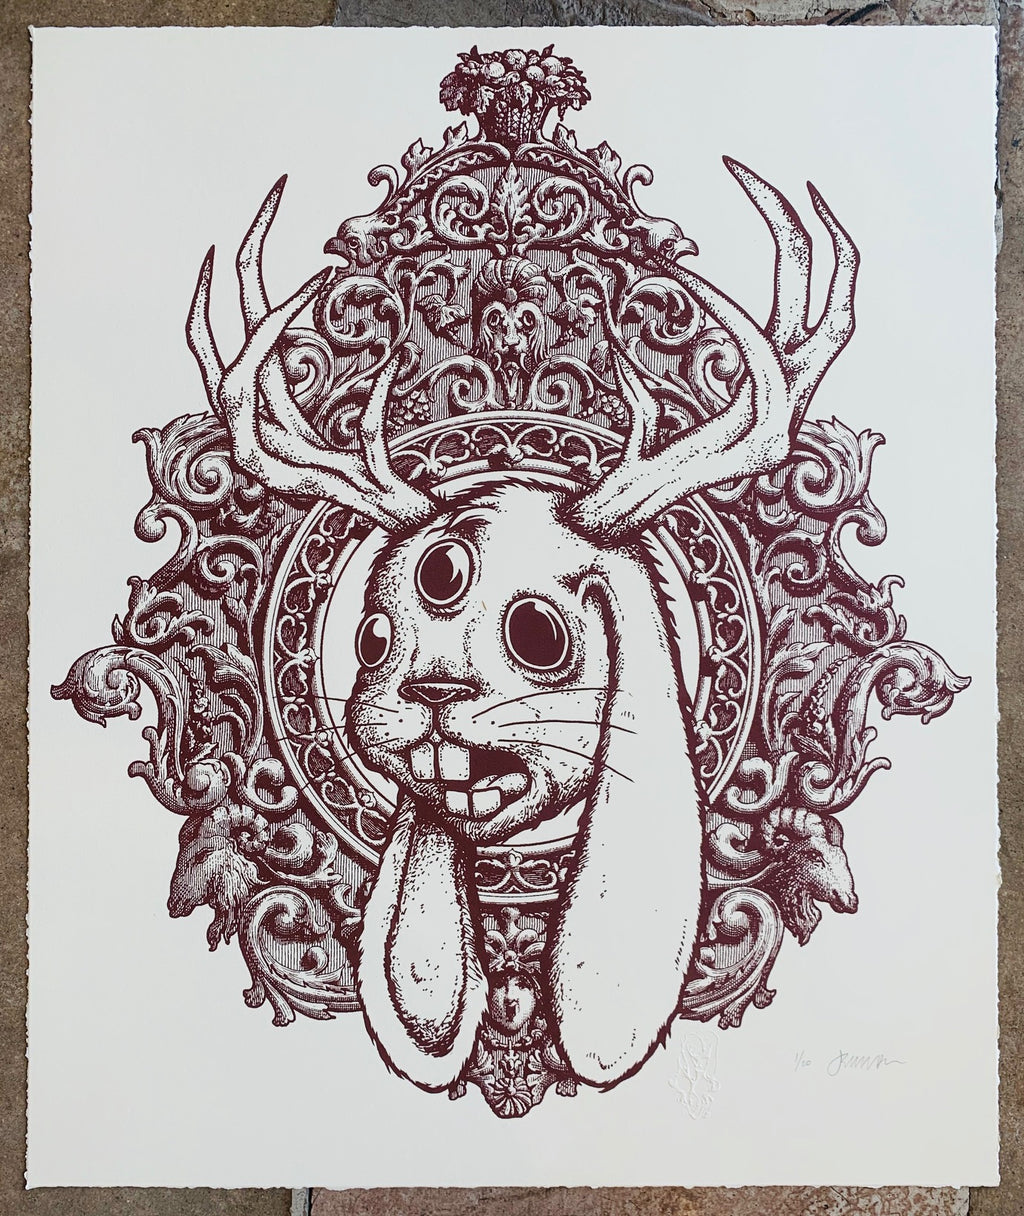 3 Eyed Jackalope deckled 1/20